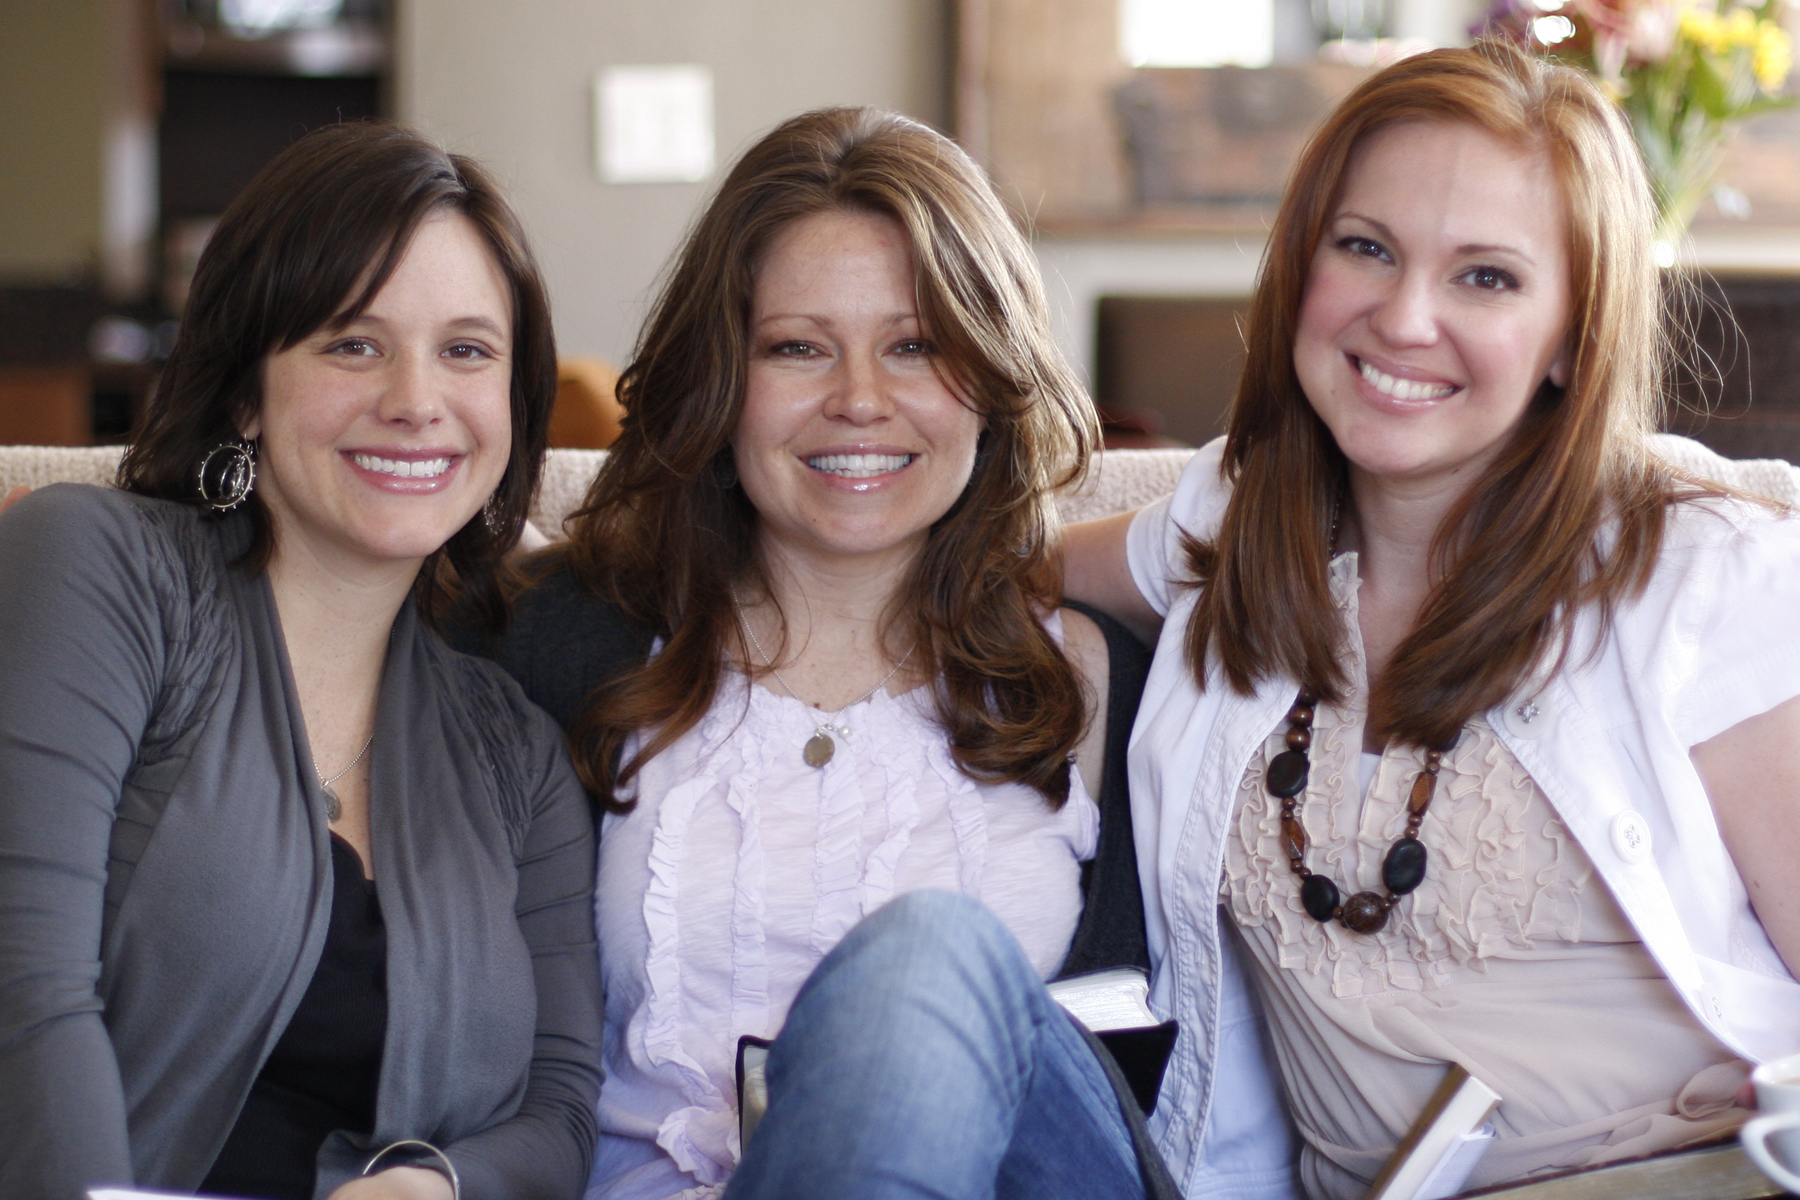 Jessica, Kelly and Angie